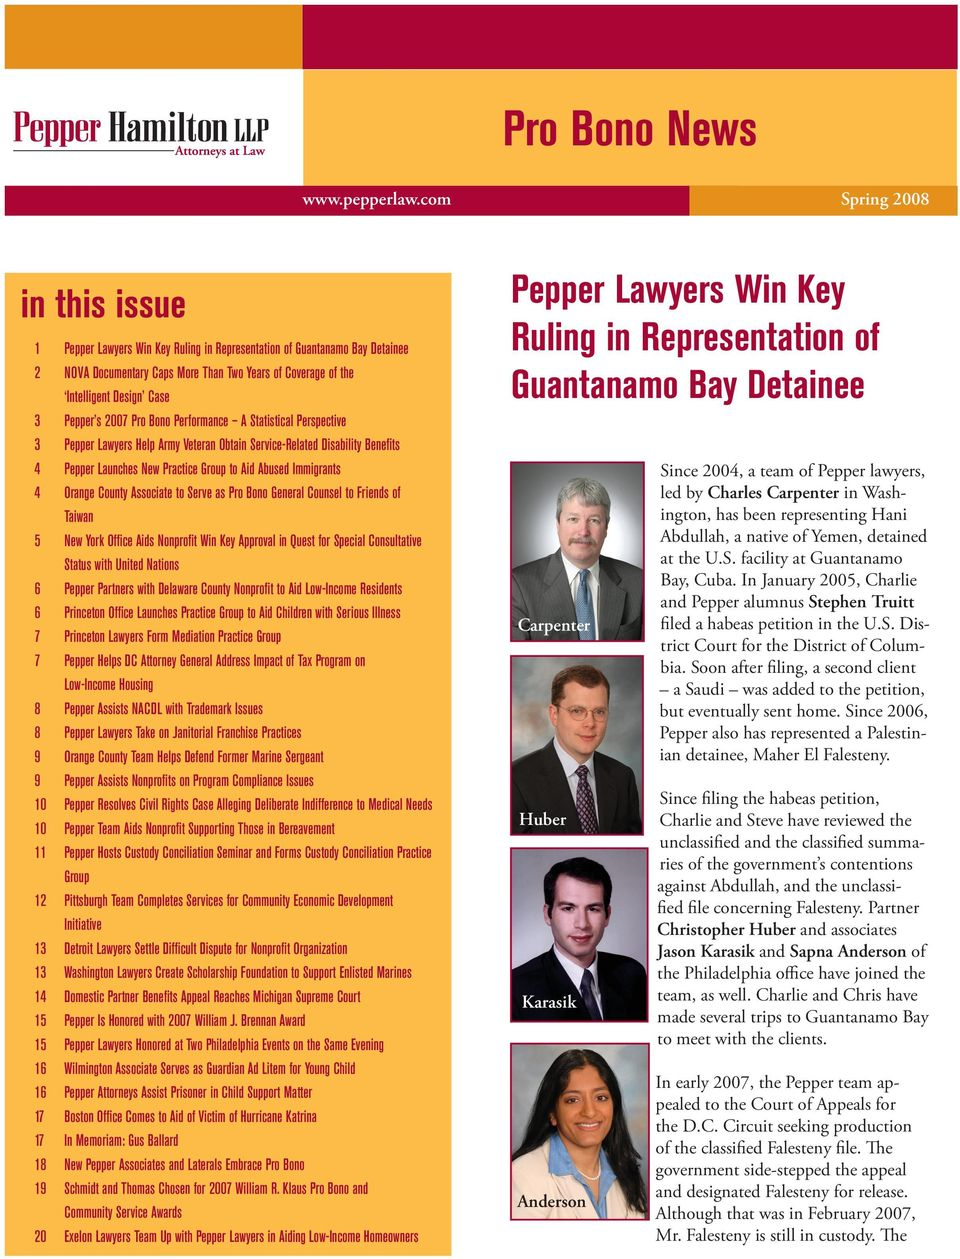 Pepper s 2007 Pro Bono Performance A Statistical Perspective 3 Pepper Lawyers Help Army Veteran Obtain Service-Related Disability Benefits 4 Pepper Launches New Practice Group to Aid Abused